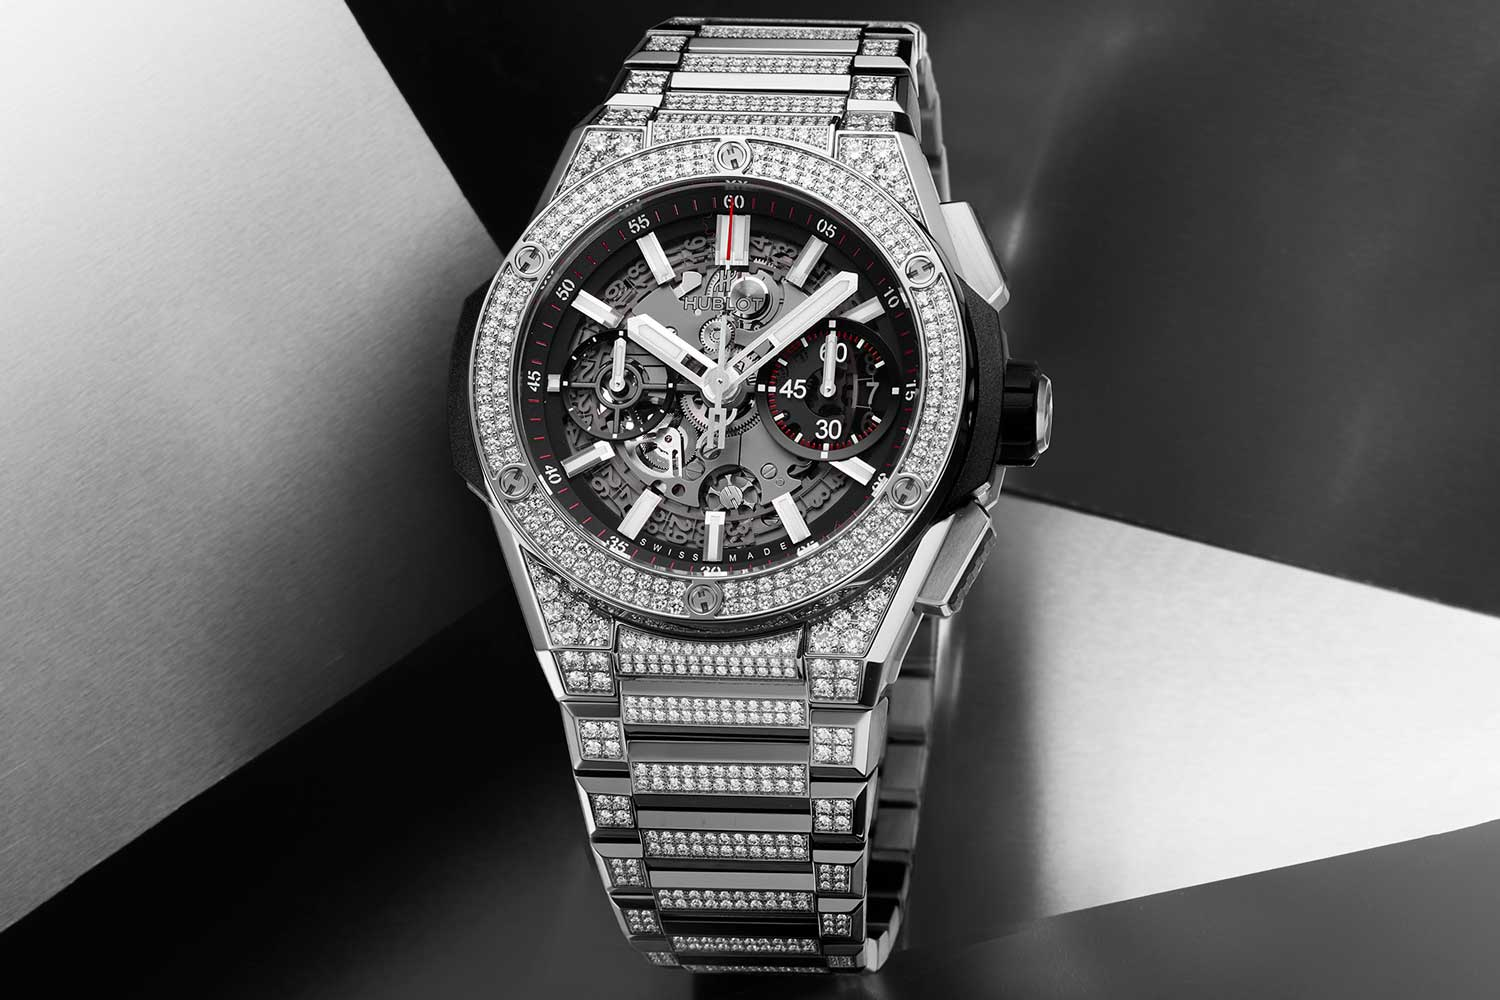 The Hublot Big Bang Integral Titanium Pavé is impressive with a pave diamond setting on titanium, with a fully integrated bracelet and case.